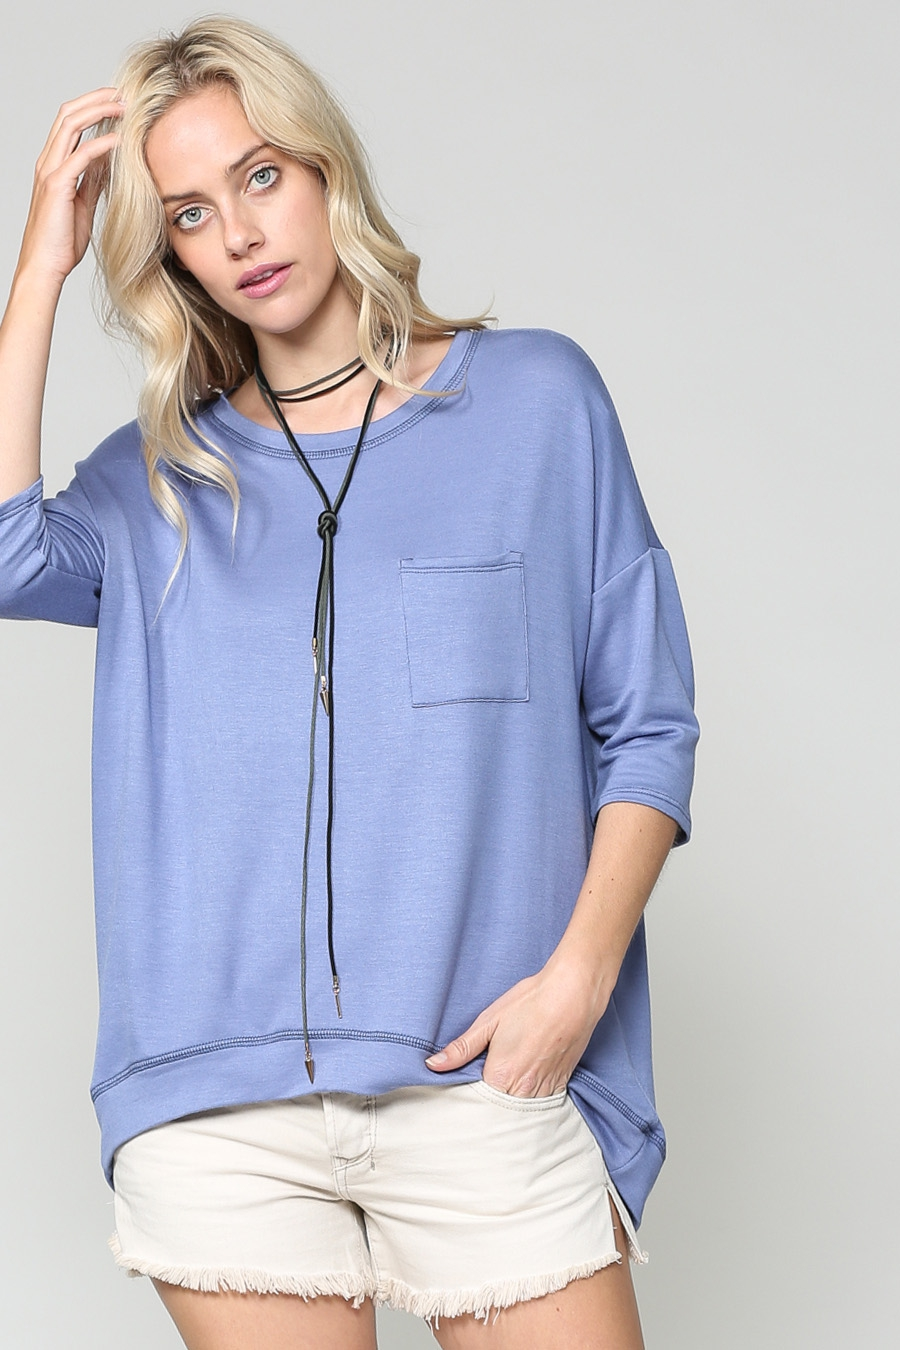 ROUND NECK FRENCH TERRY SHIRT - orangeshine.com